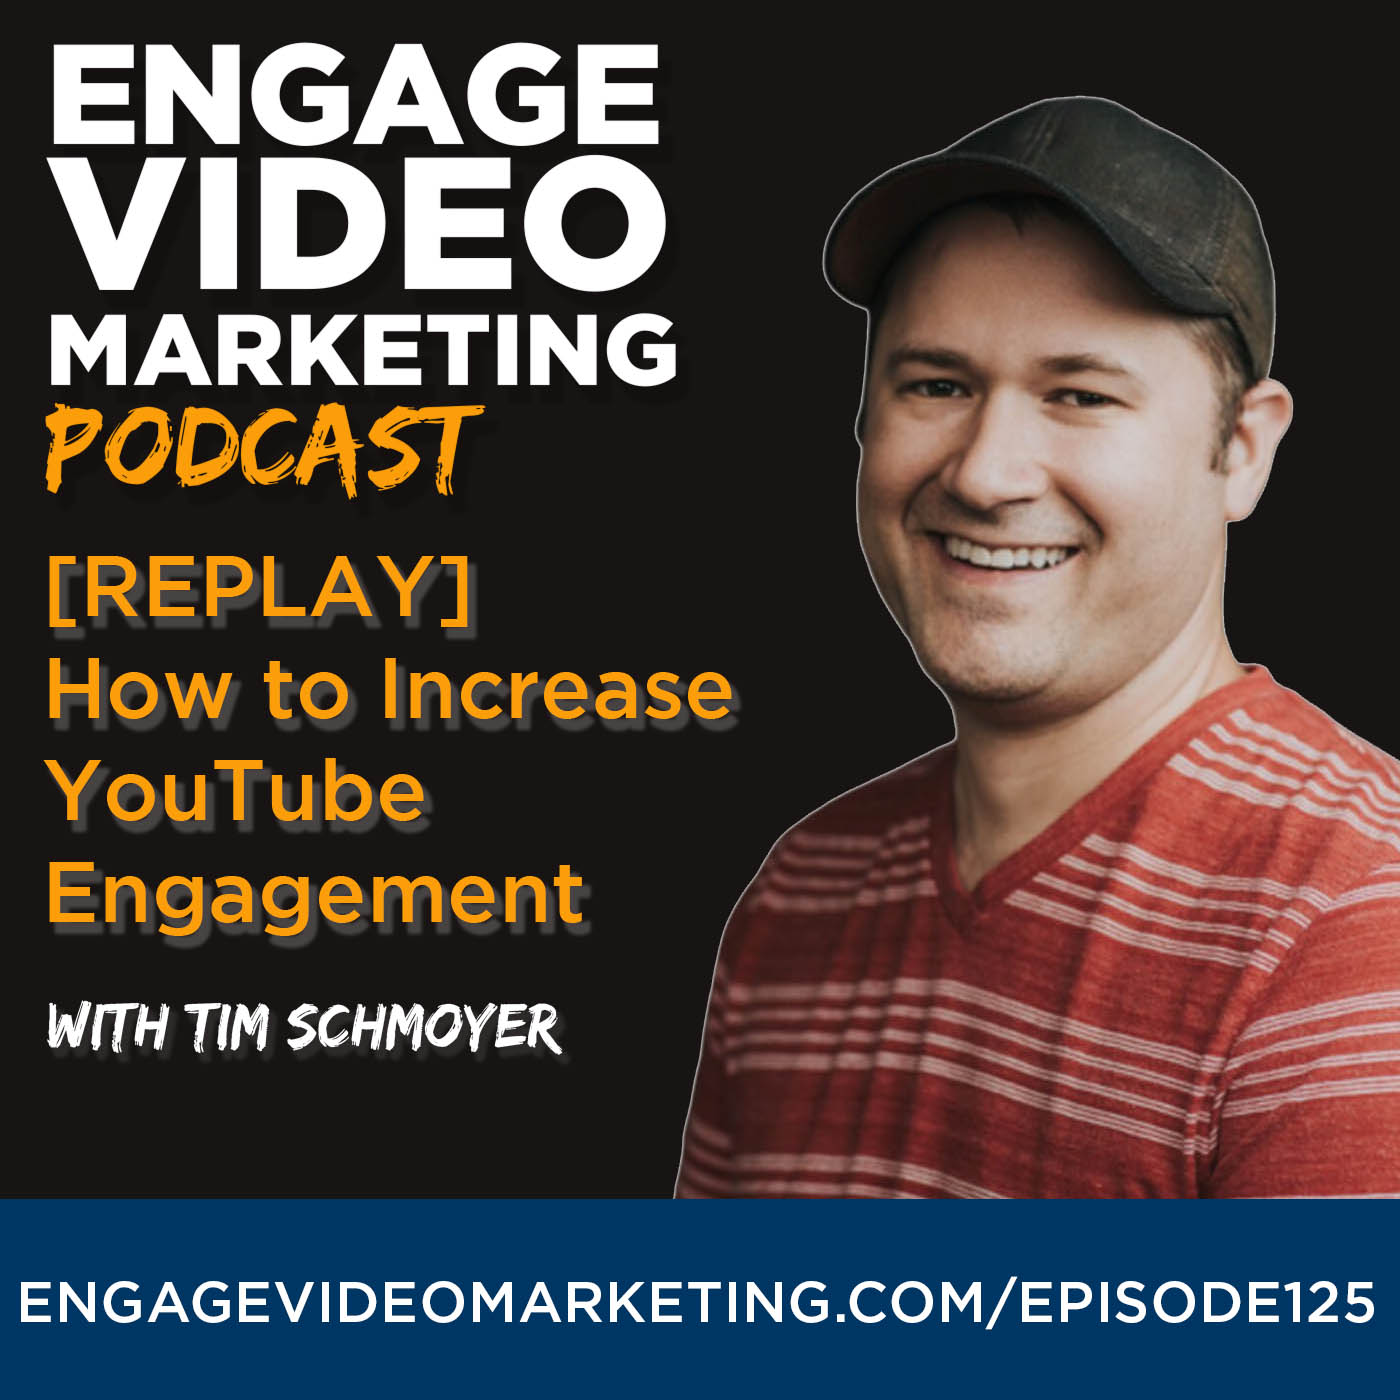 [REPLAY] How to Increase YouTube Engagement with Tim Schmoyer